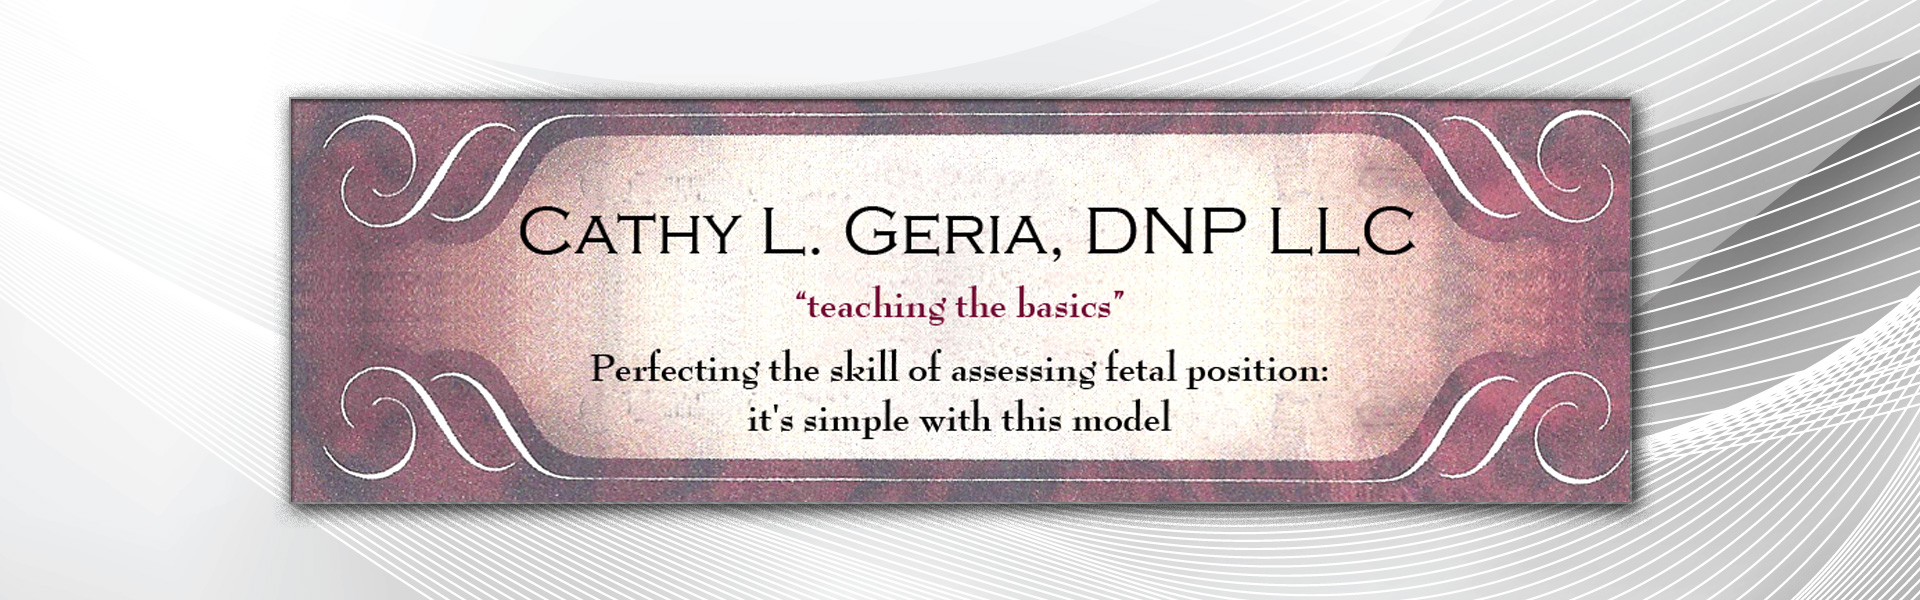 Banner Of Cathy L. Geria, DNP LLC